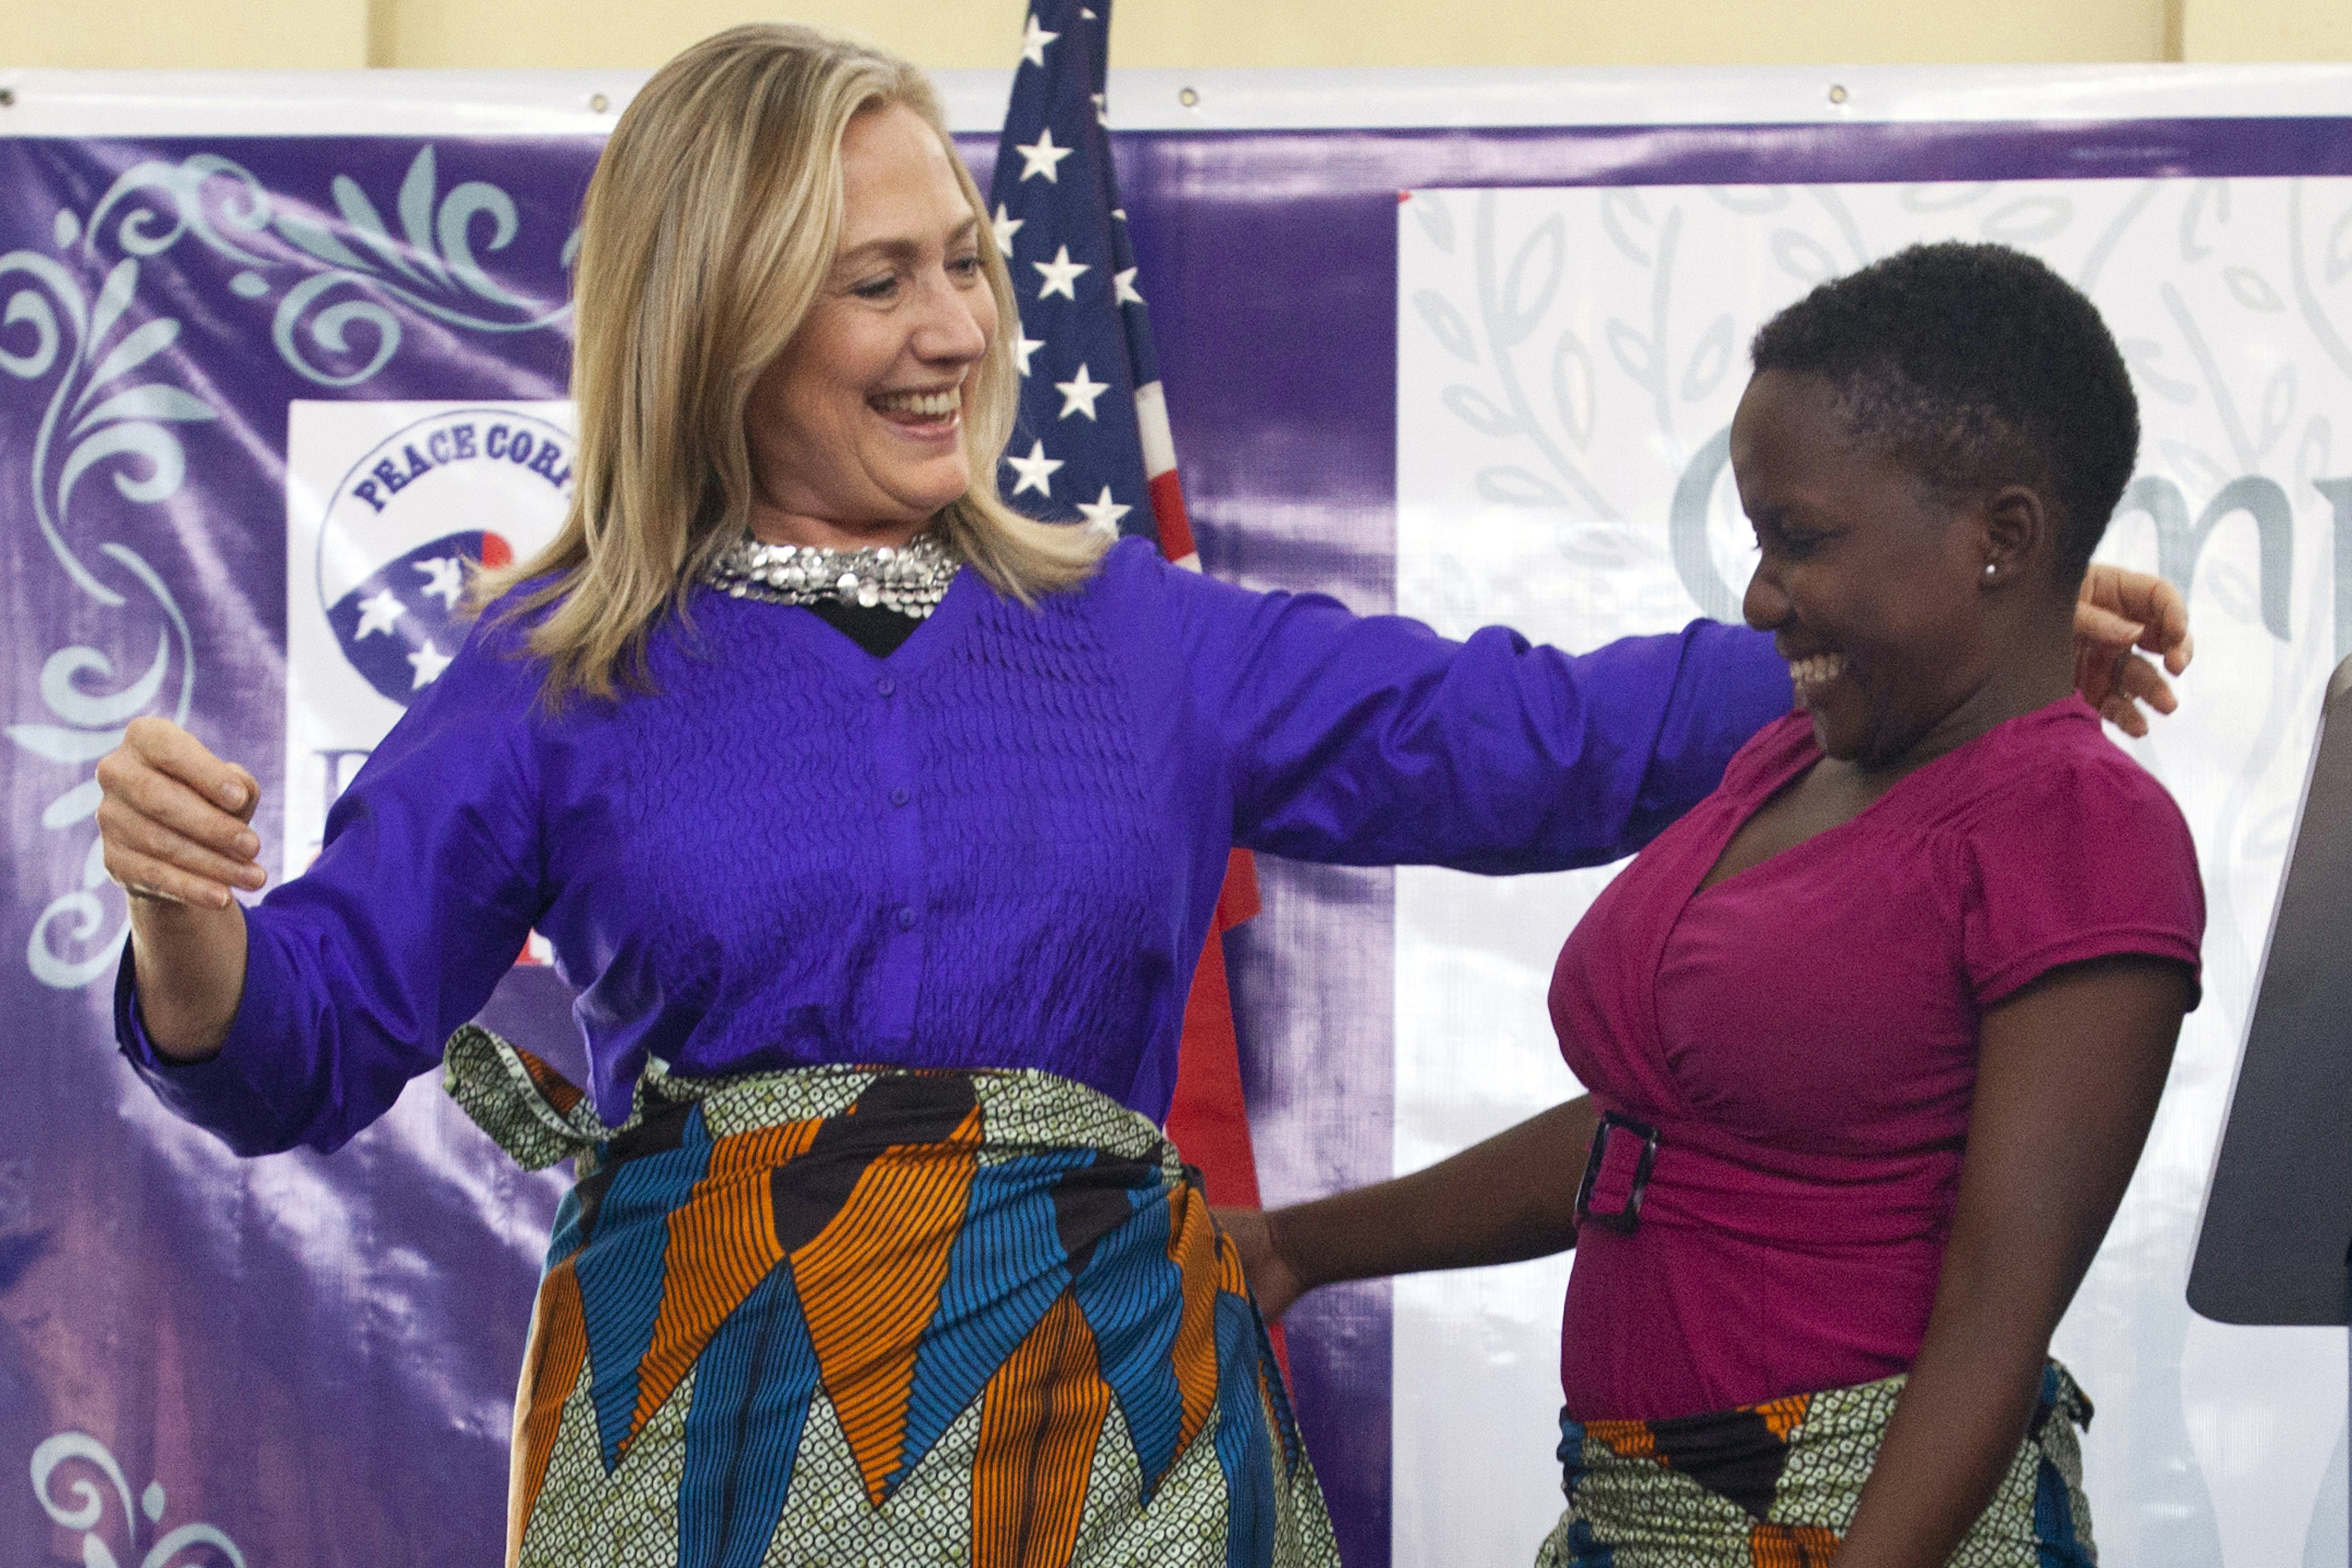 Hillary Clinton embraces Triza Lapani, 17, after  the teen helped Clinton put on a chitenje cloth, a traditional skirt, after speaking at Camp GLOW (Girls Leading Our World) run by the Peace Corps, in Lilongwe, Malawi on Aug. 5, 2012.